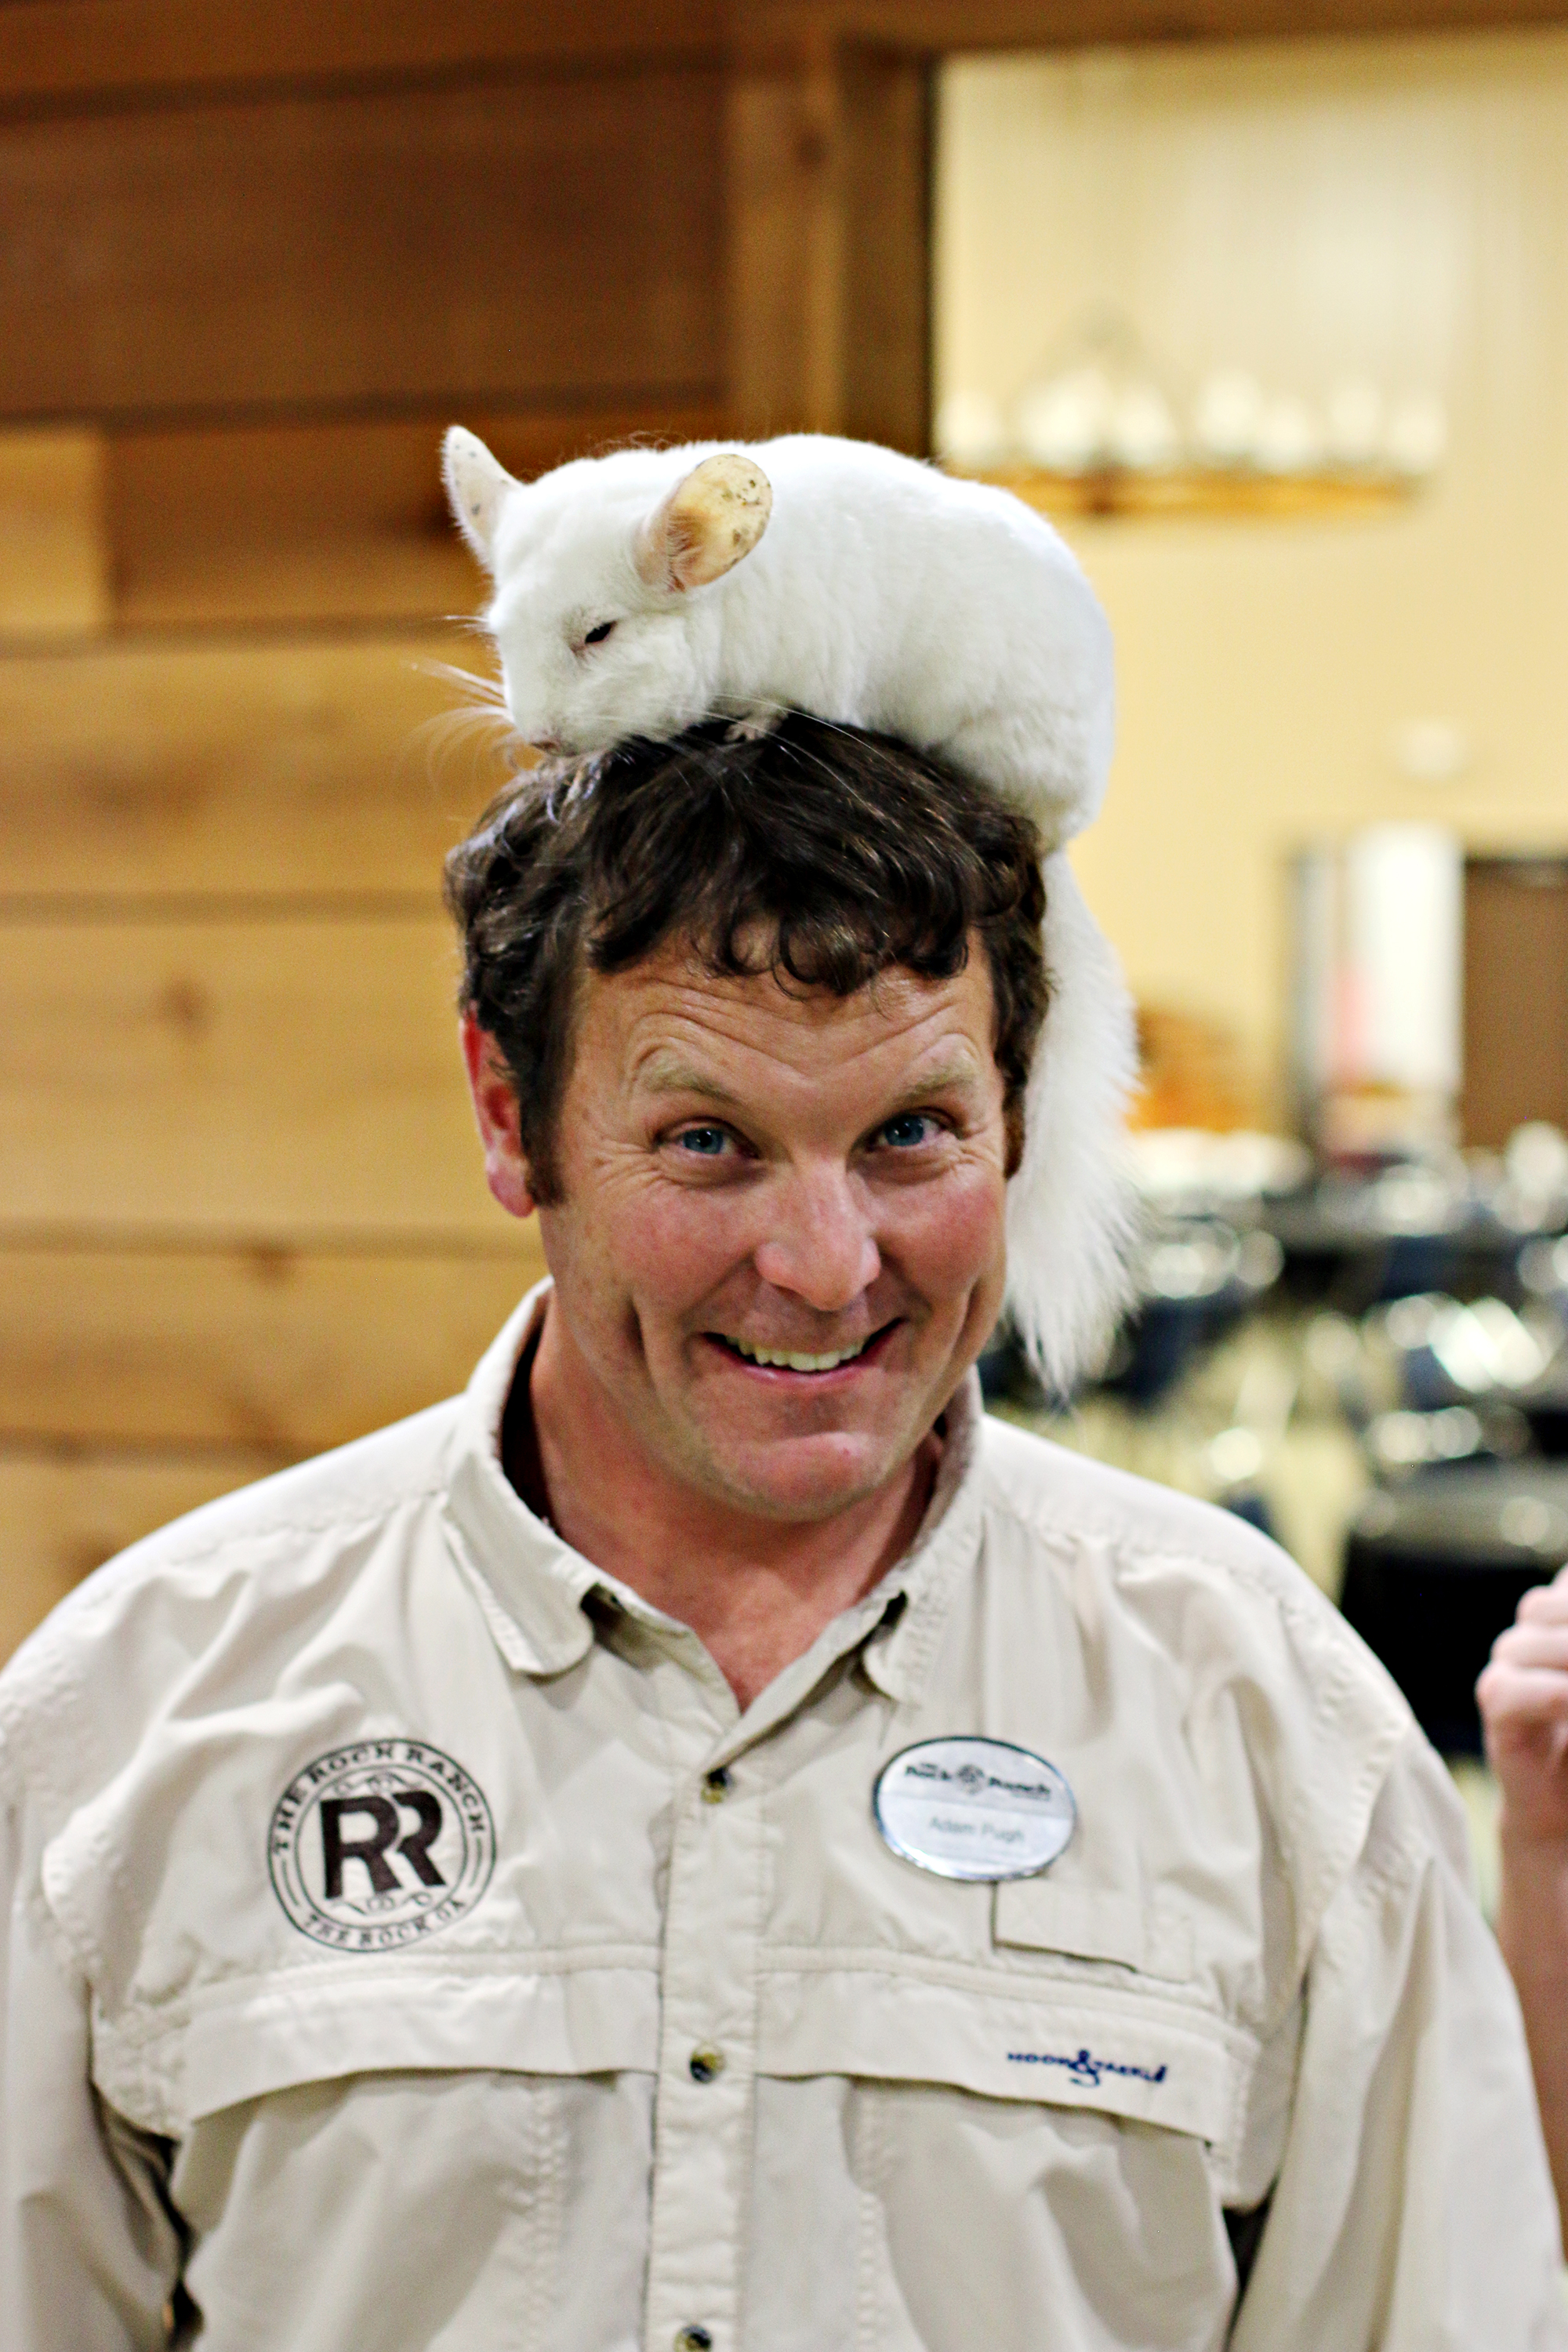 Smiling employee of The Rock Ranch with a chinchilla on his head.